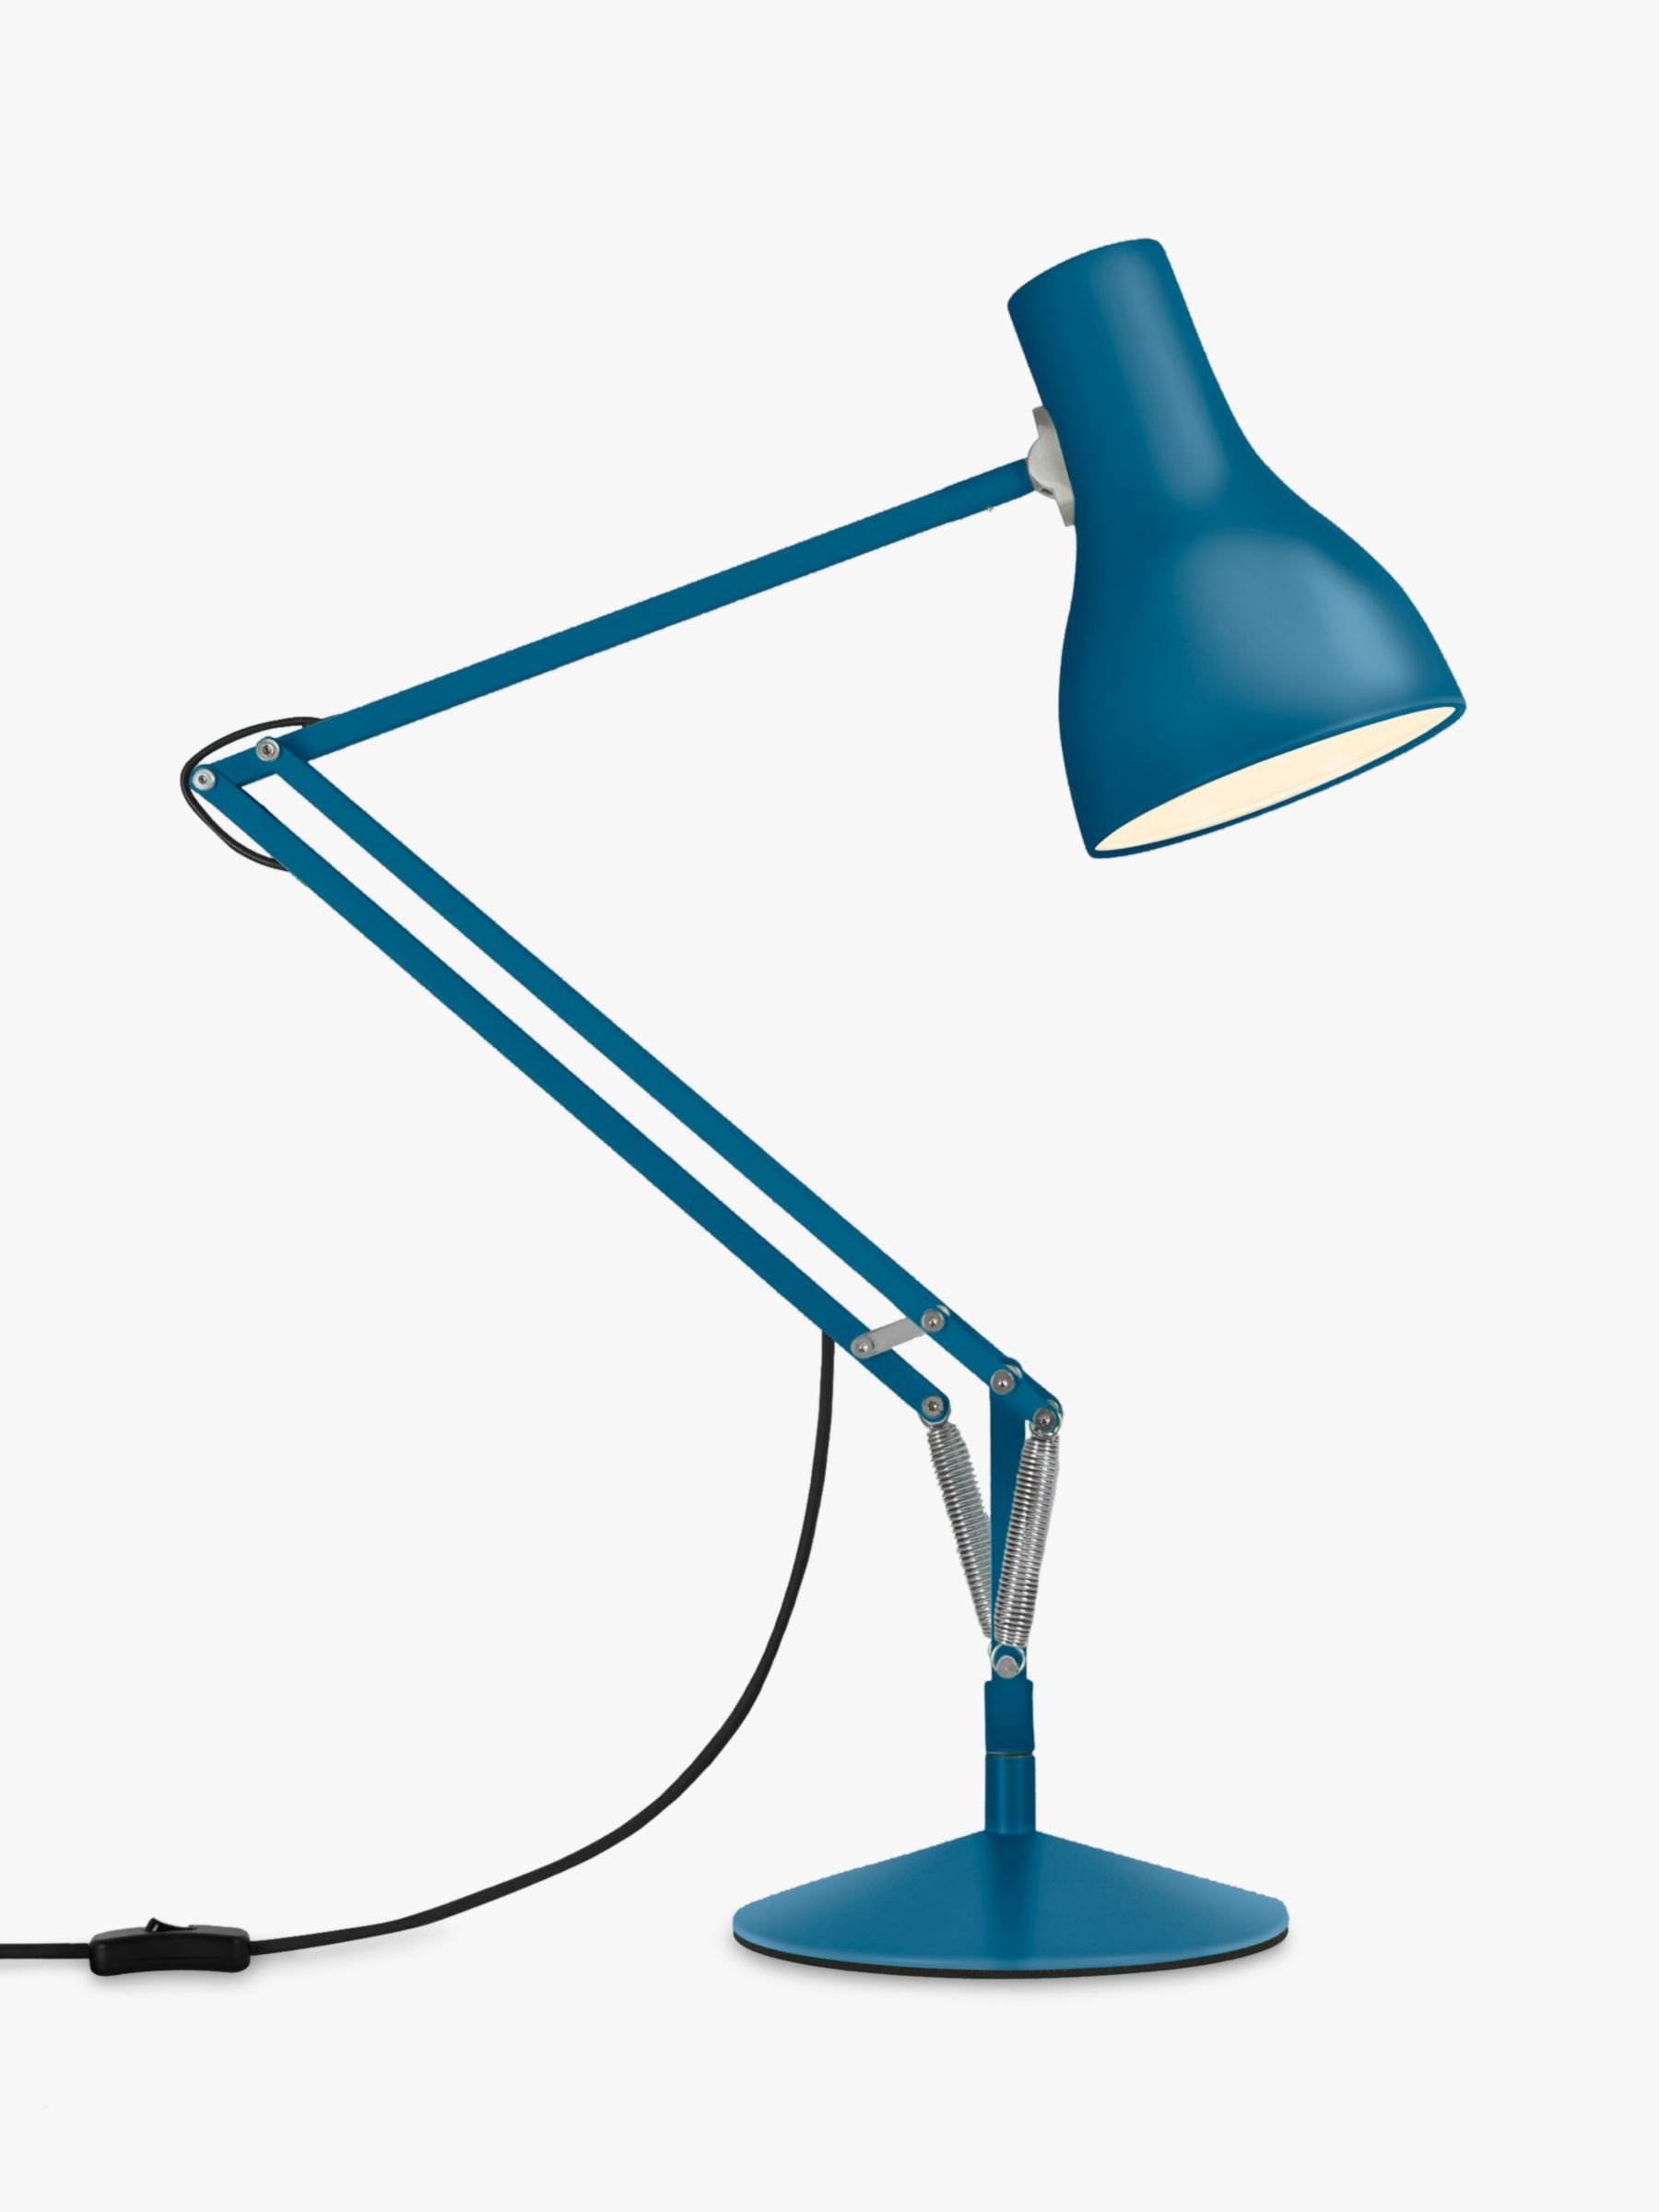 Anglepoise Anglepoise Type 75 Margaret Howell Edition Desk Lamp, Saxon Blue